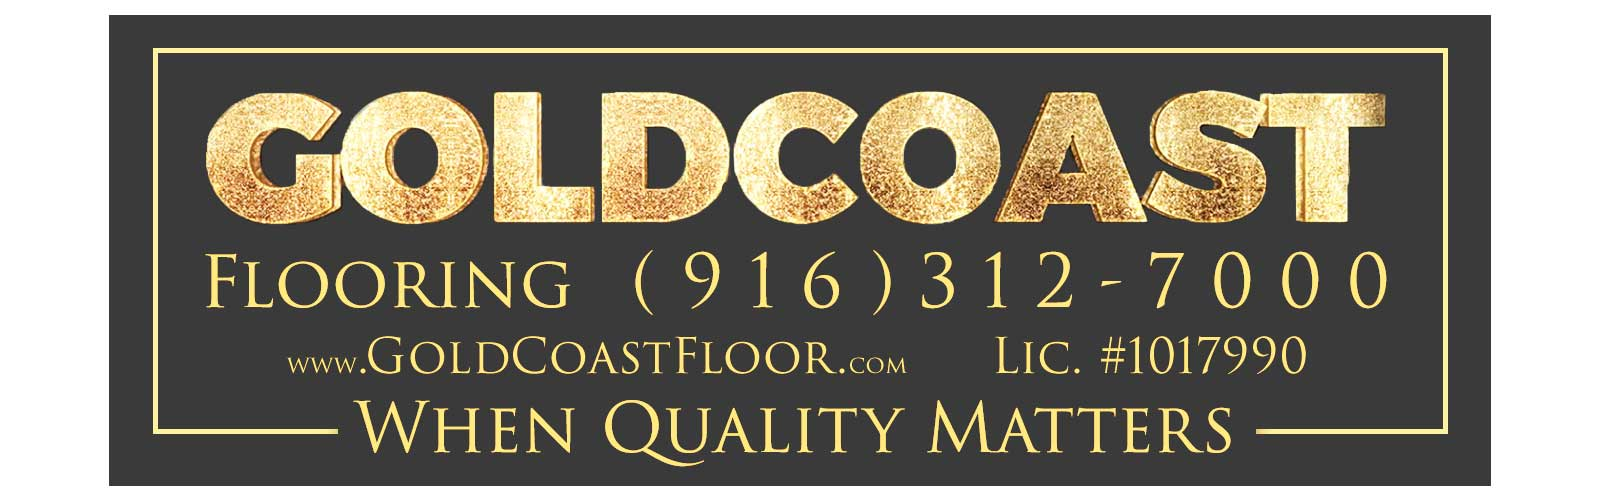 gold-coast-flooring-carpet-cleaning-tile-grout-cleaning-carpet-repairs-installation